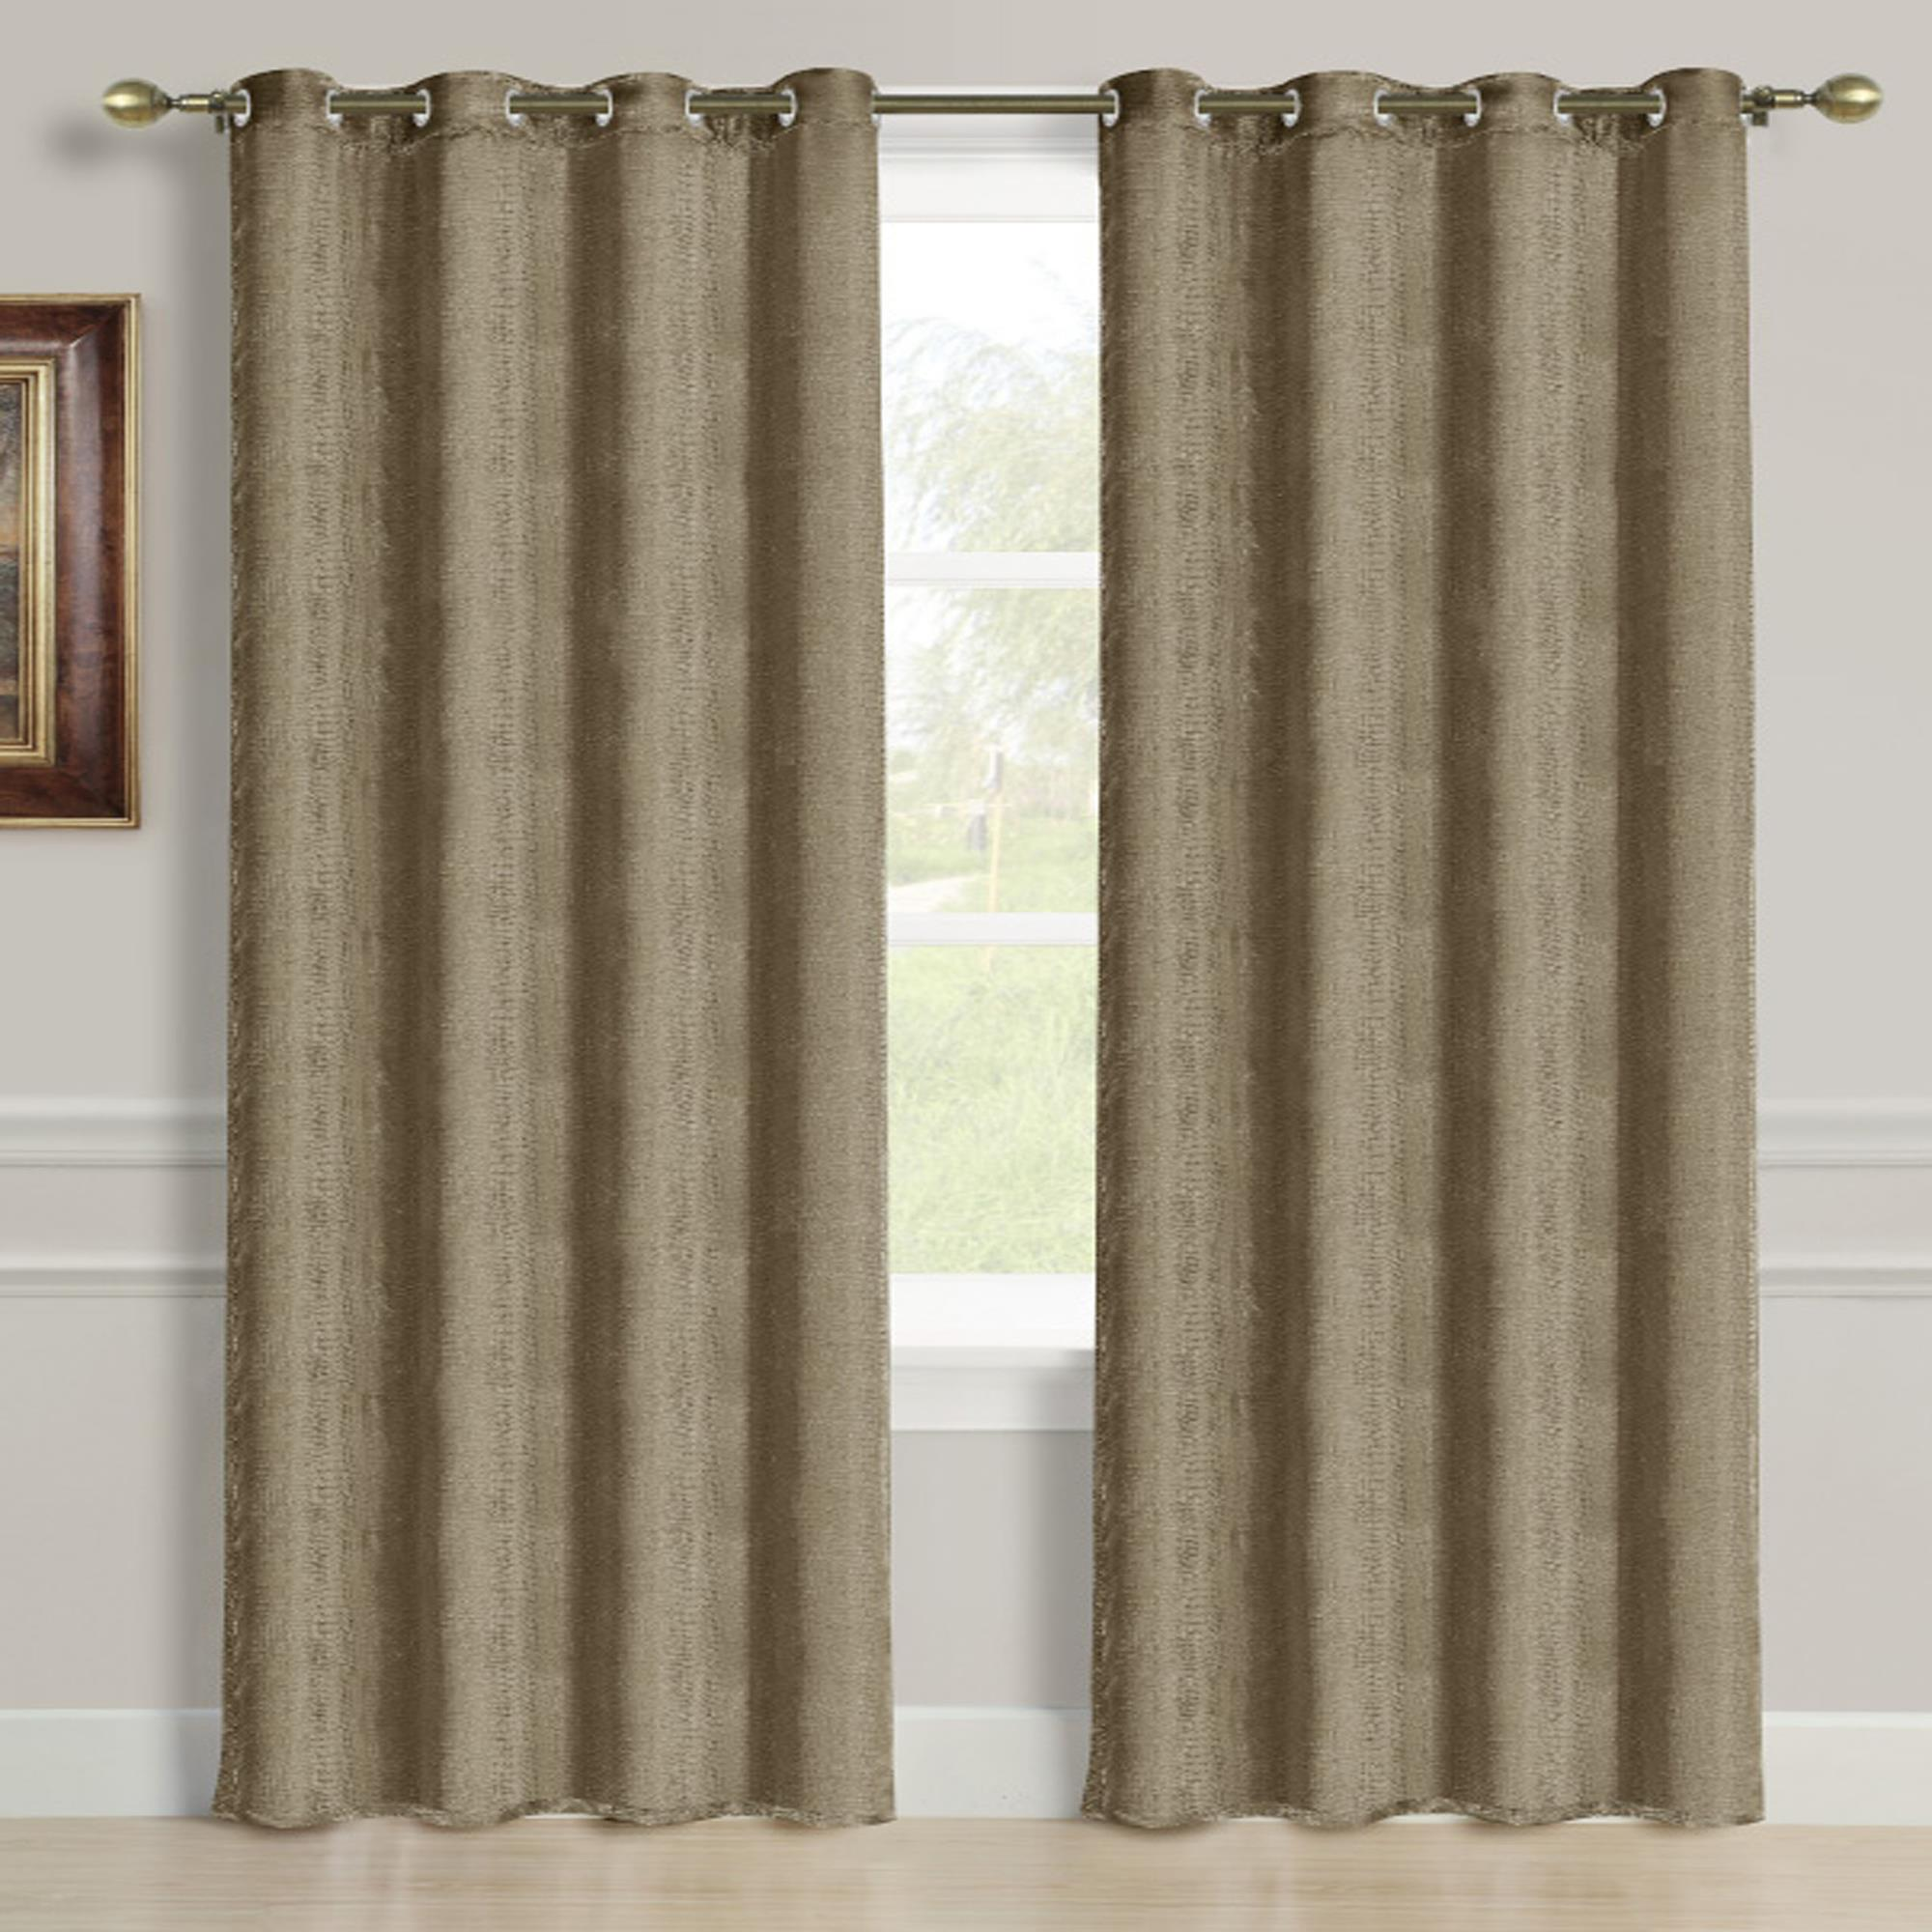 Viper Jacquard 55 x 84 in. Grommet Single Curtain Panel, Taupe by Ramallah Trading Company, Inc.